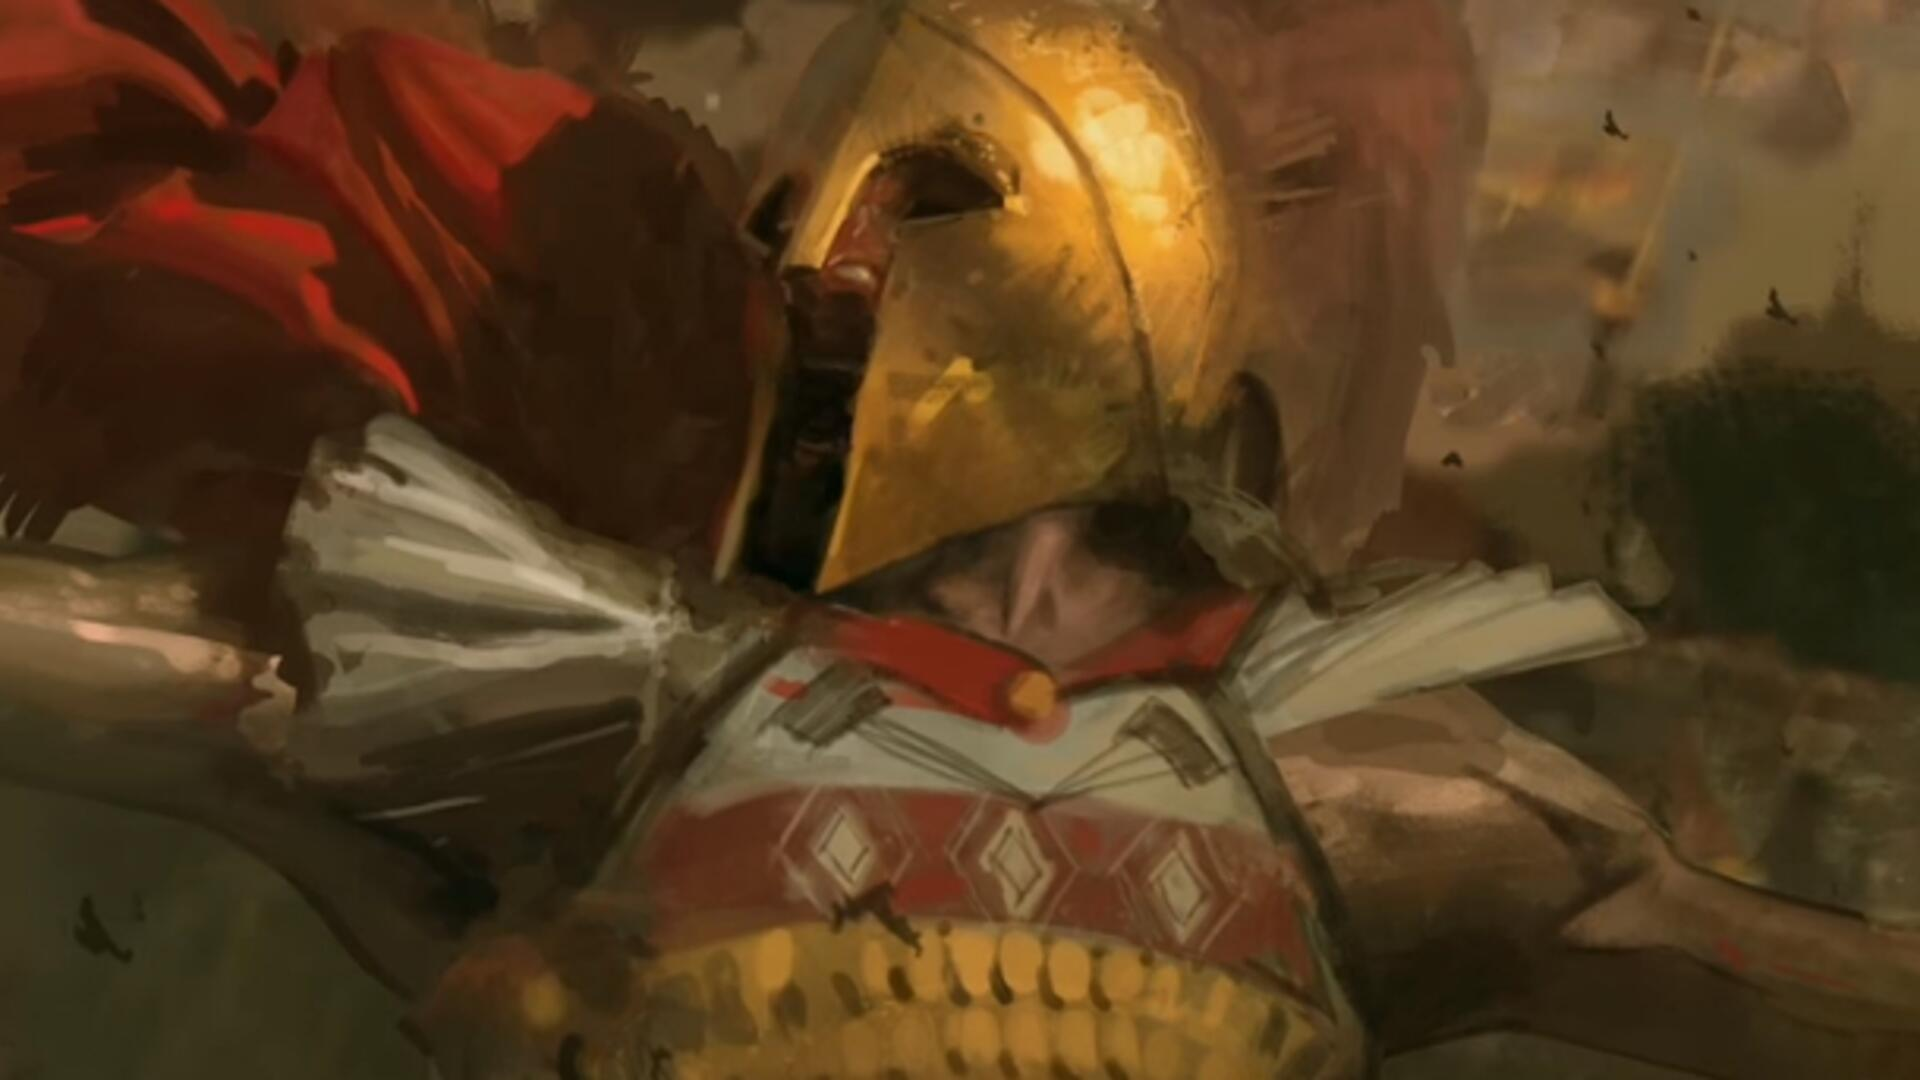 Microsoft Announces Age of Empires IV From Dawn of War Developer